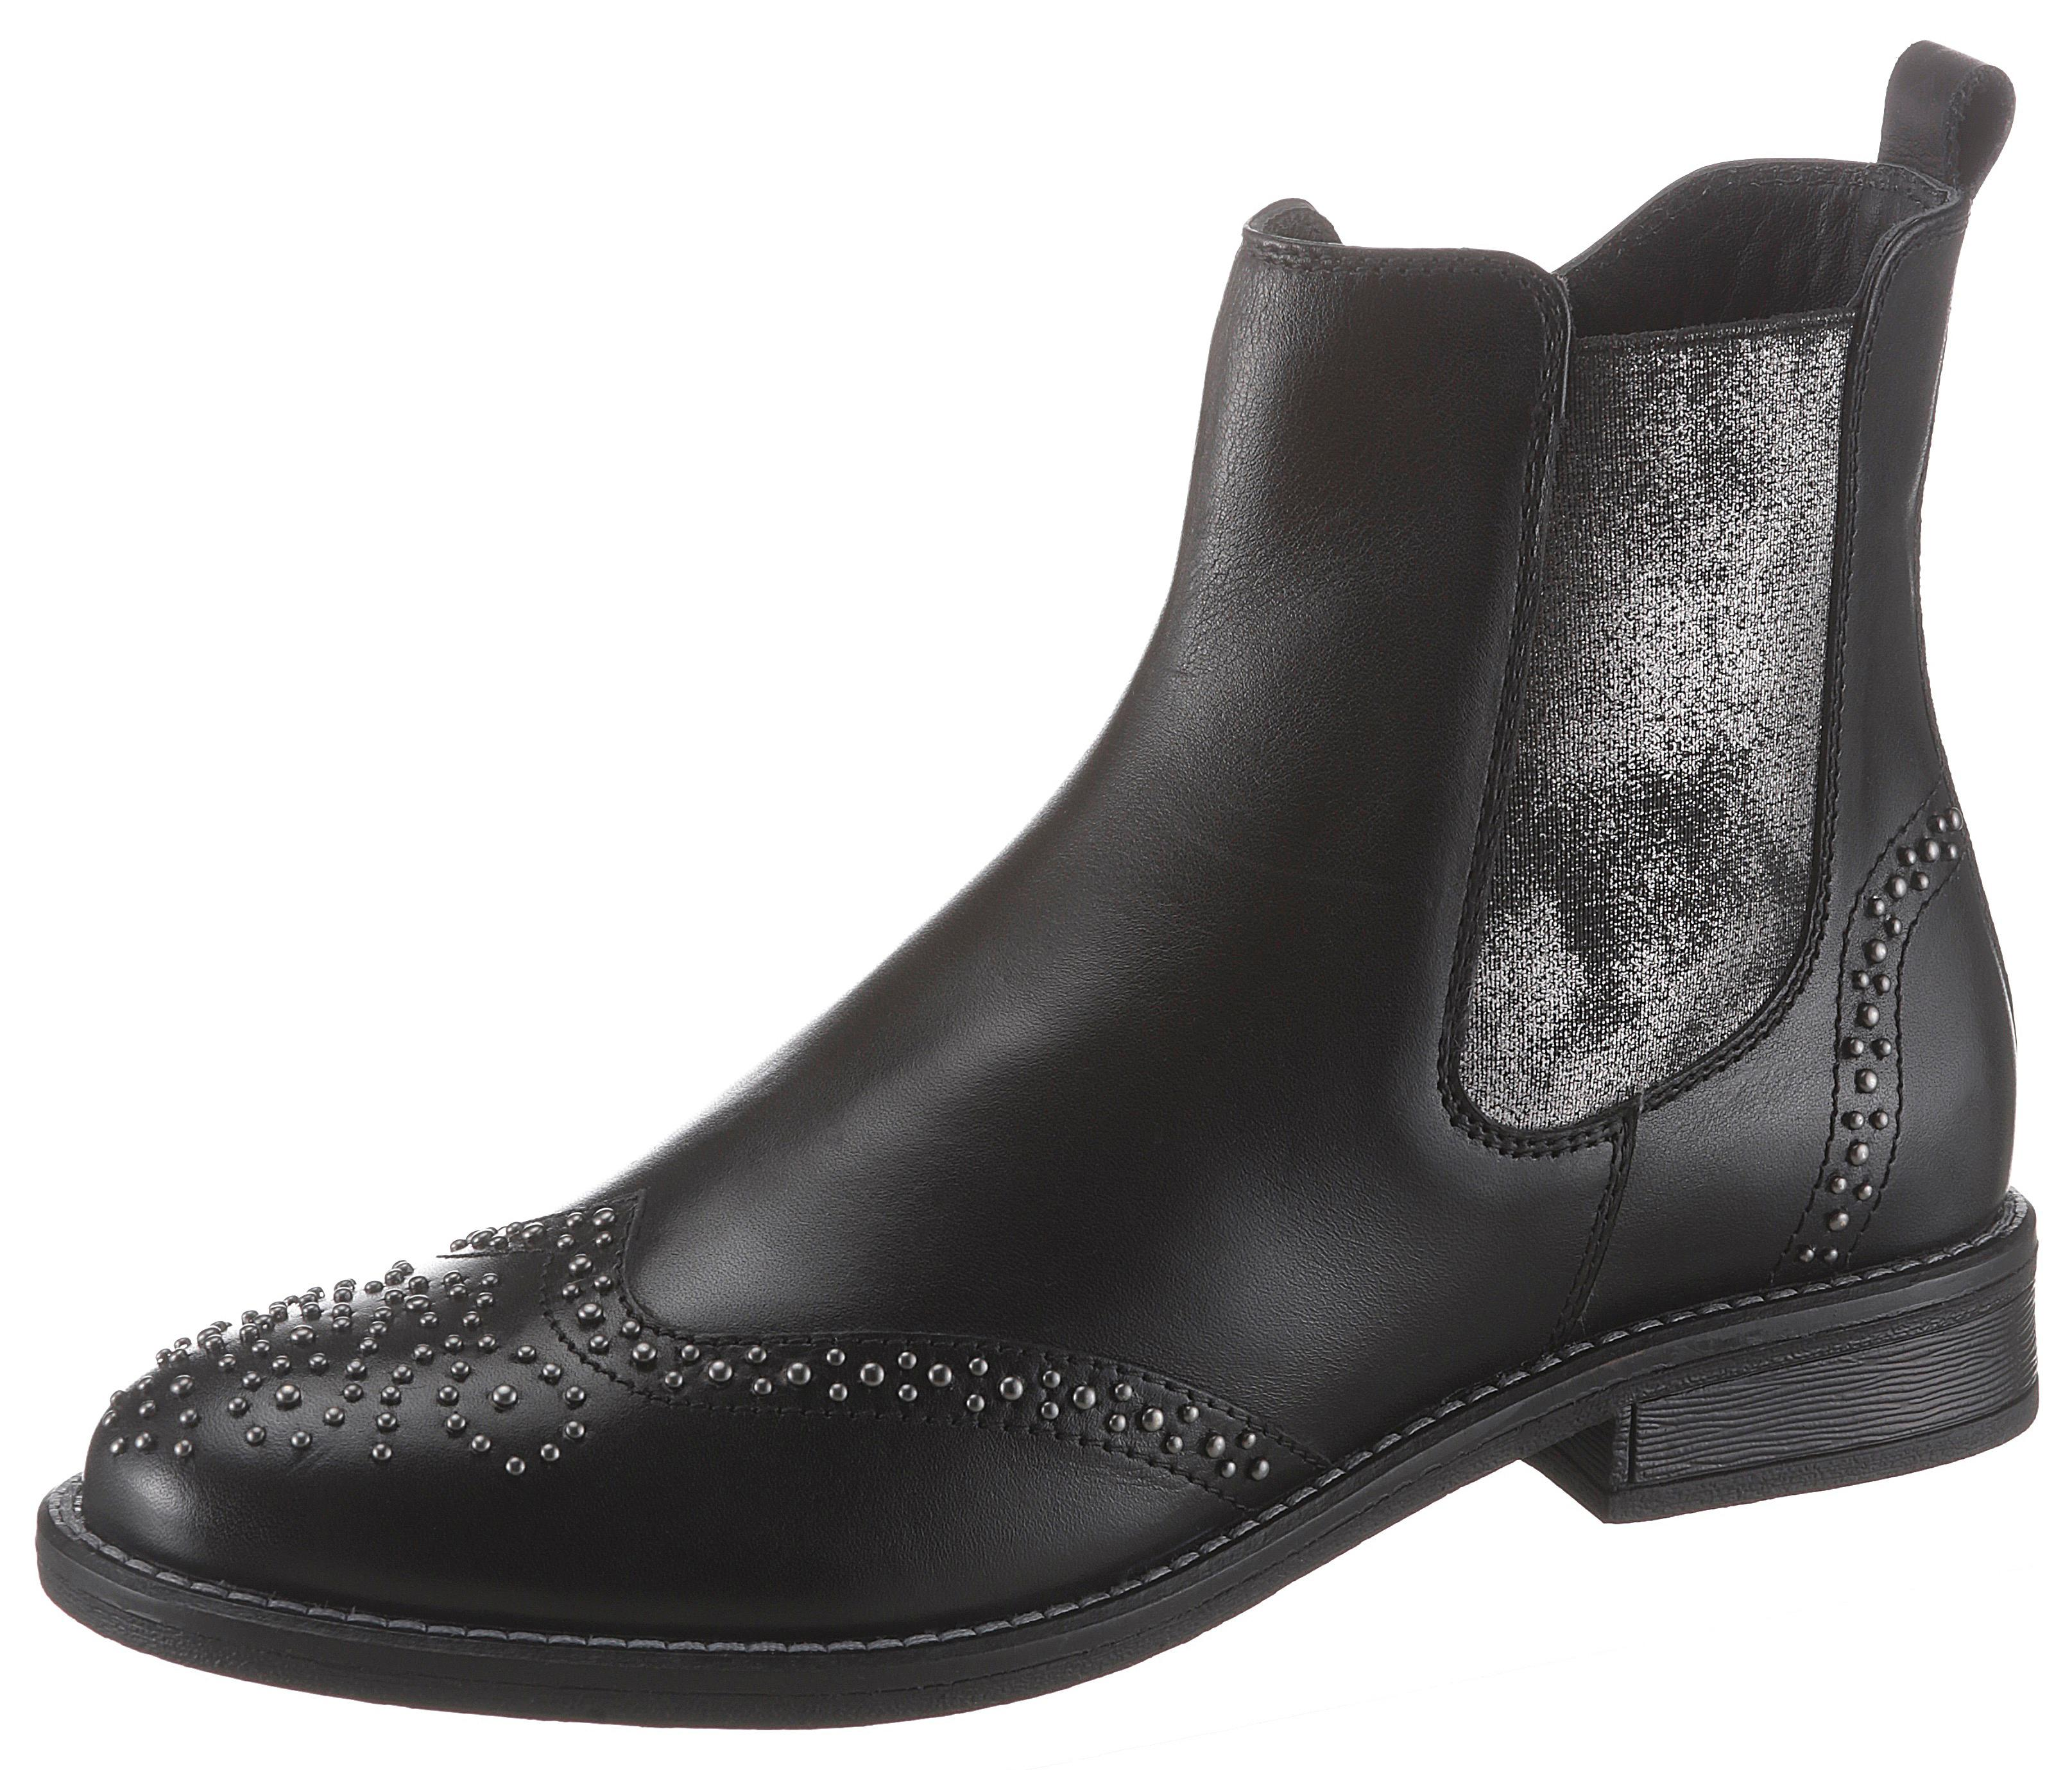 Image of Betty Barclay Shoes Chelseaboots